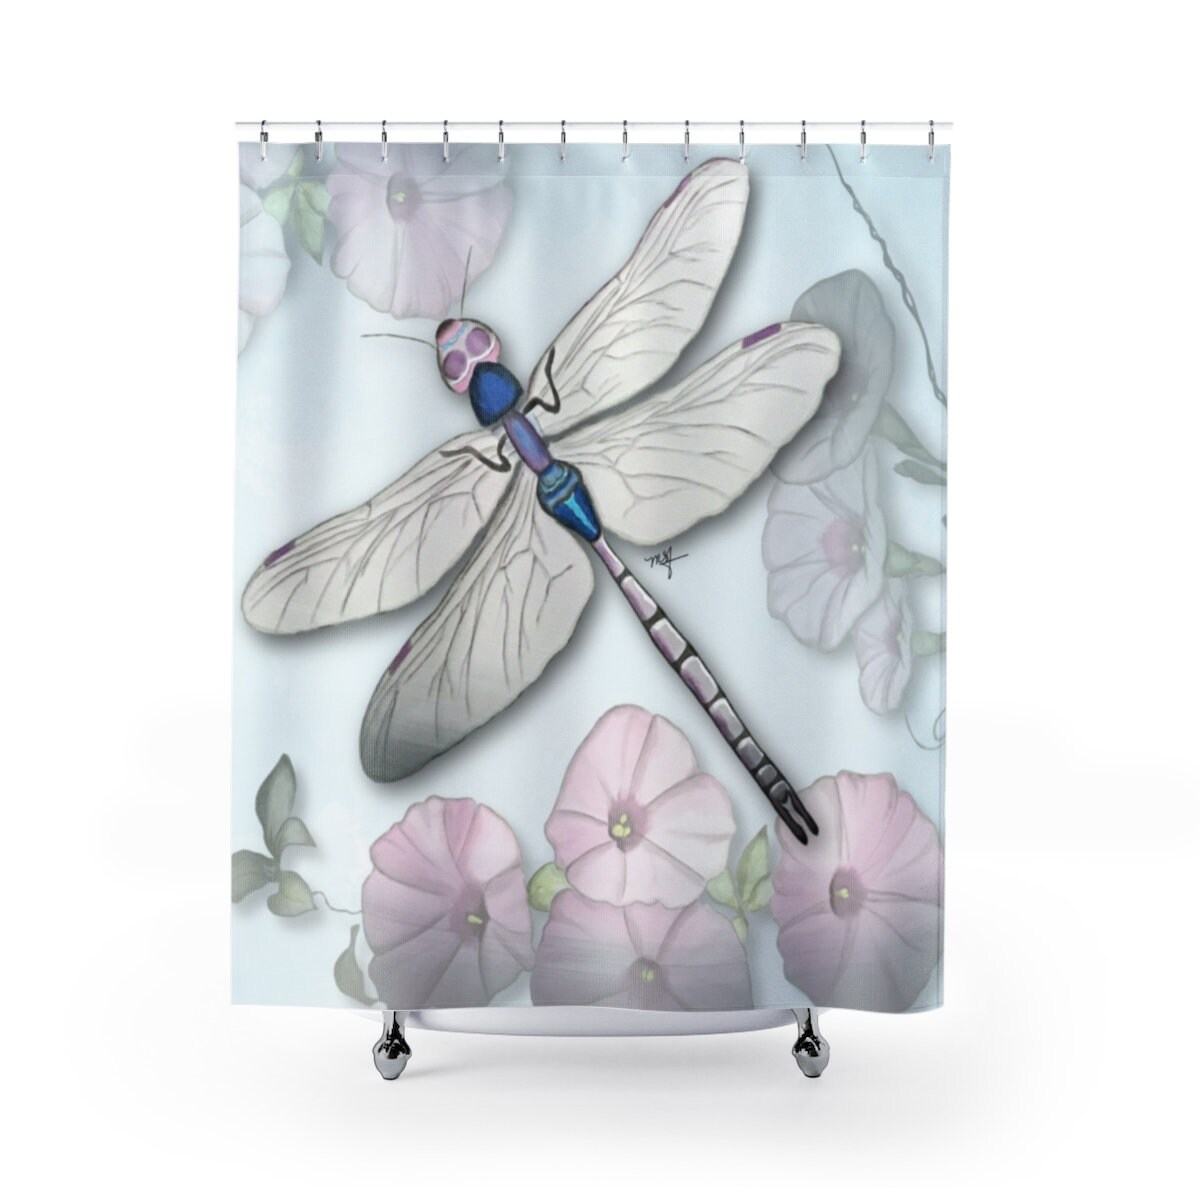 Dragonfly Shower Curtain Morning Glories Original Art Hand Painted Design